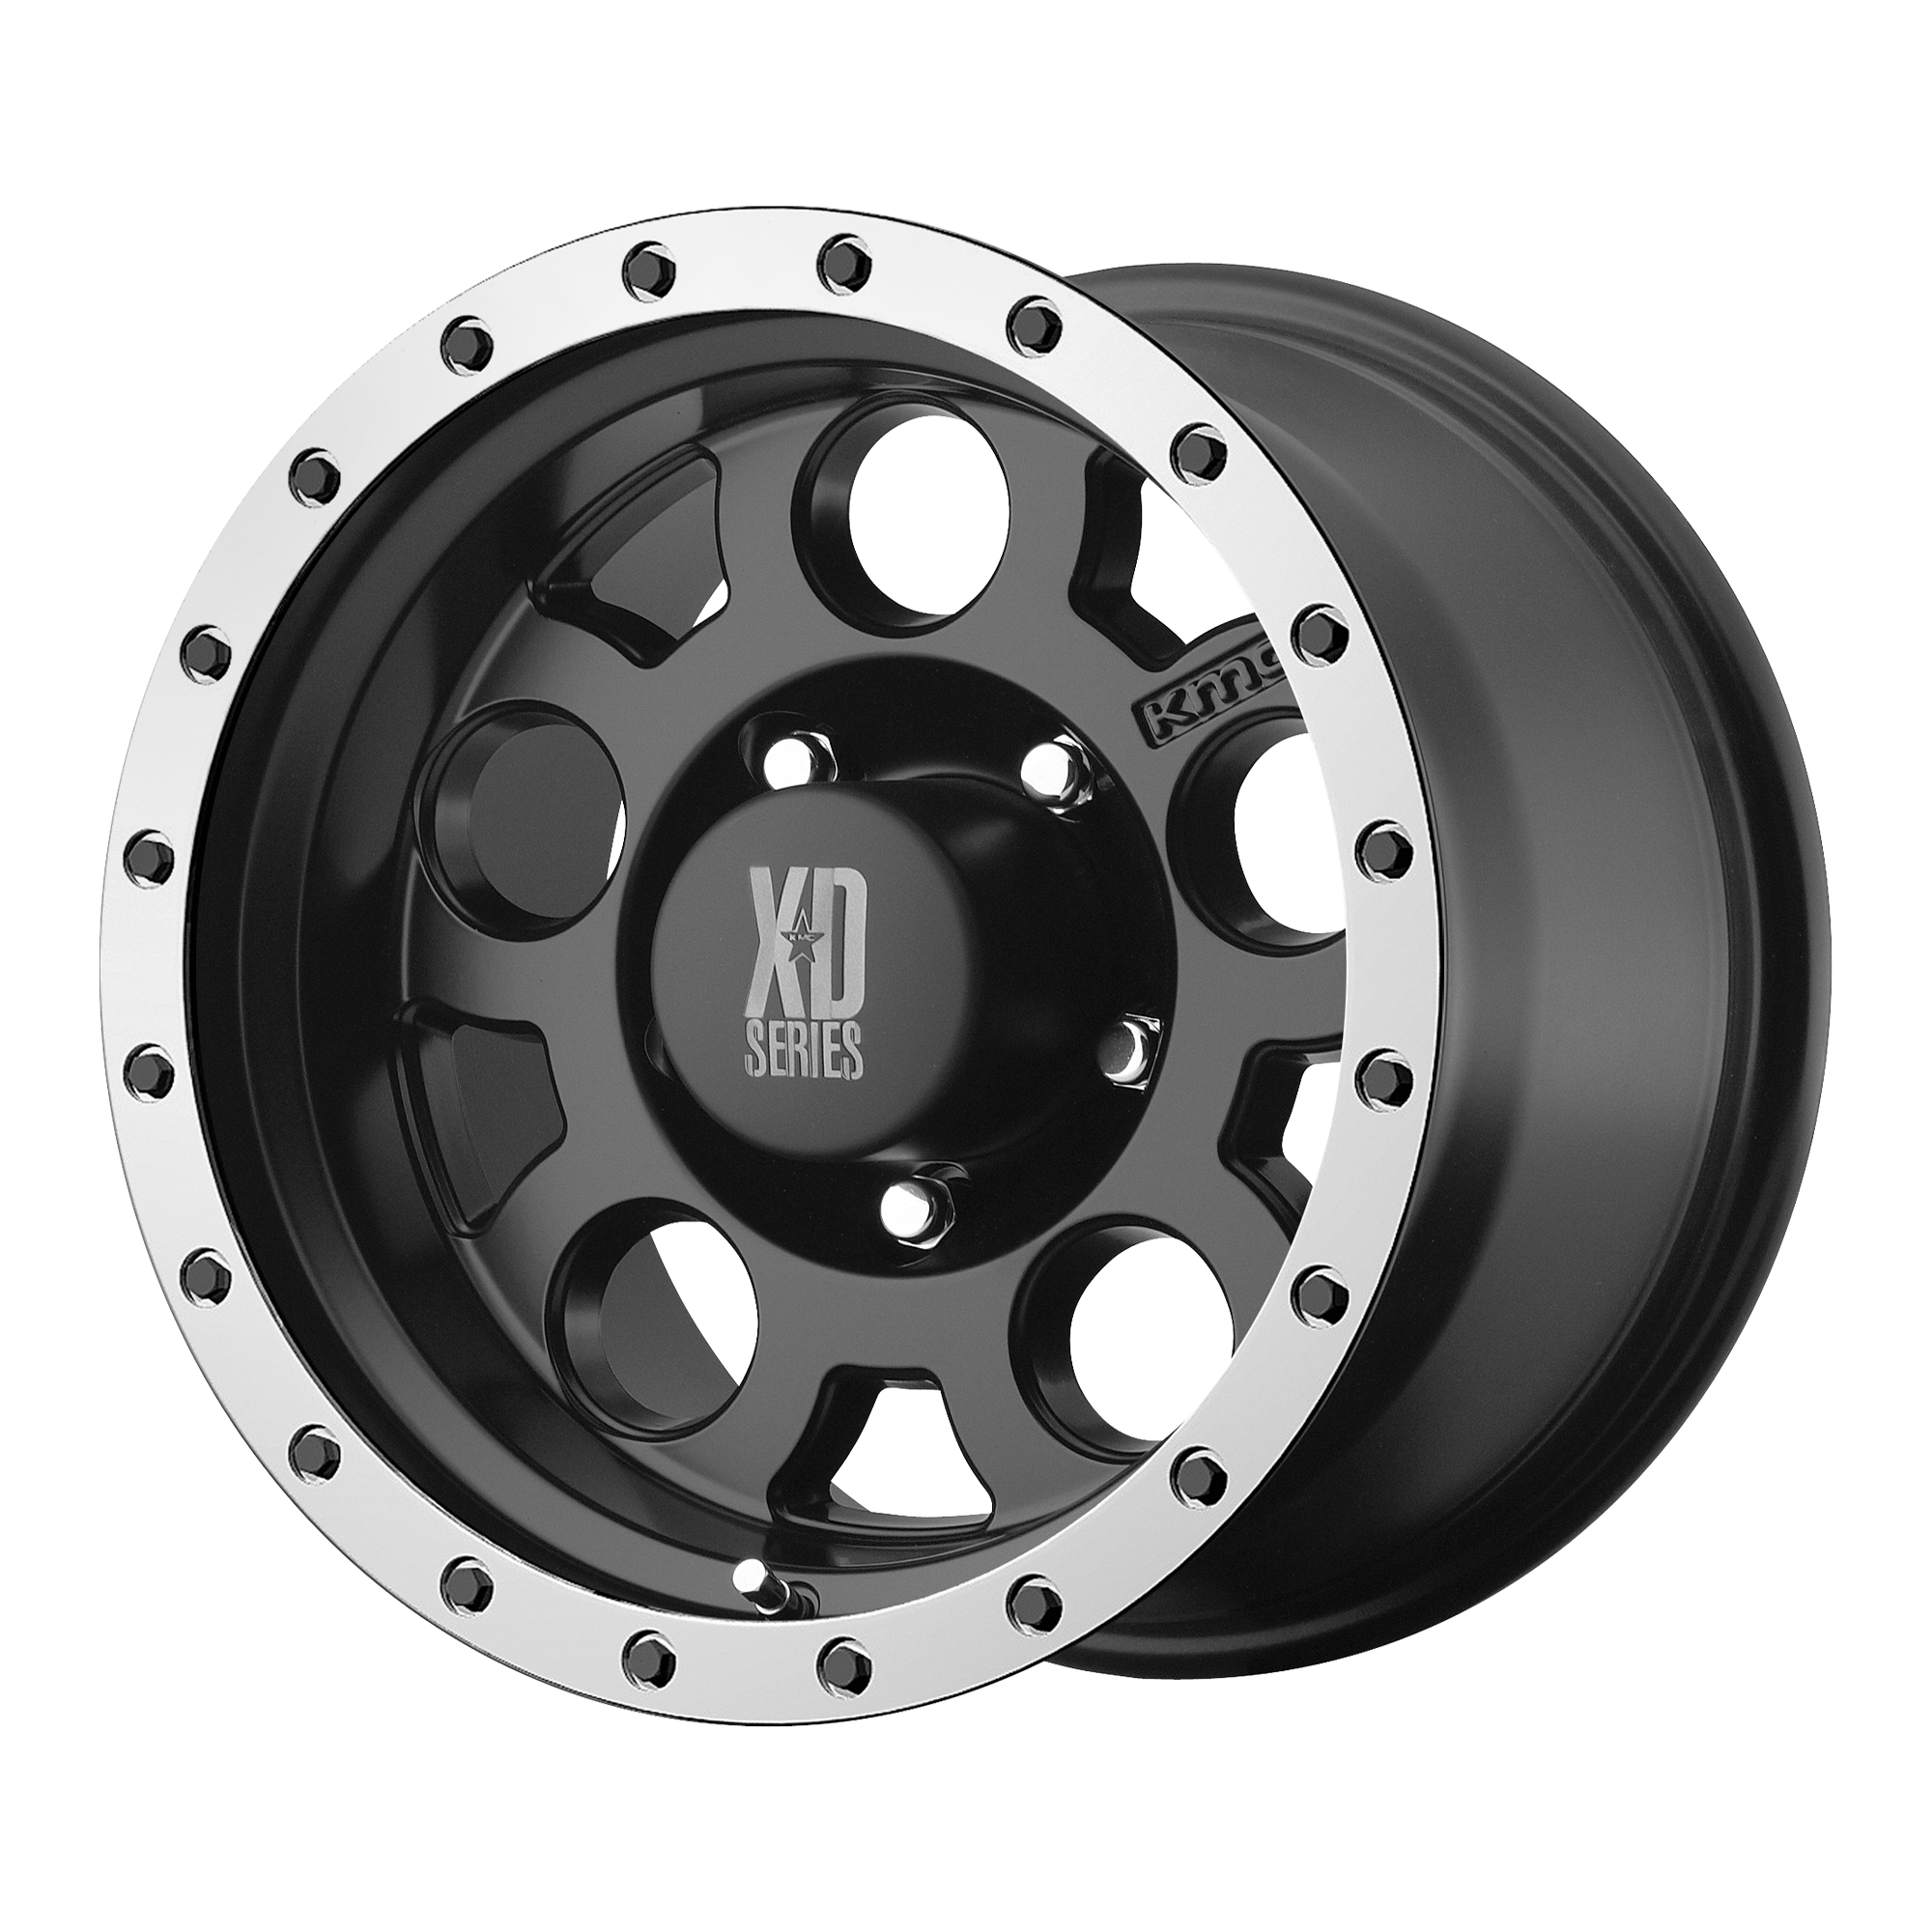 XD SERIES XD125 hliníkové disky 9x20 5x127 ET18 Matte Black With Machined Reinforcing Ring